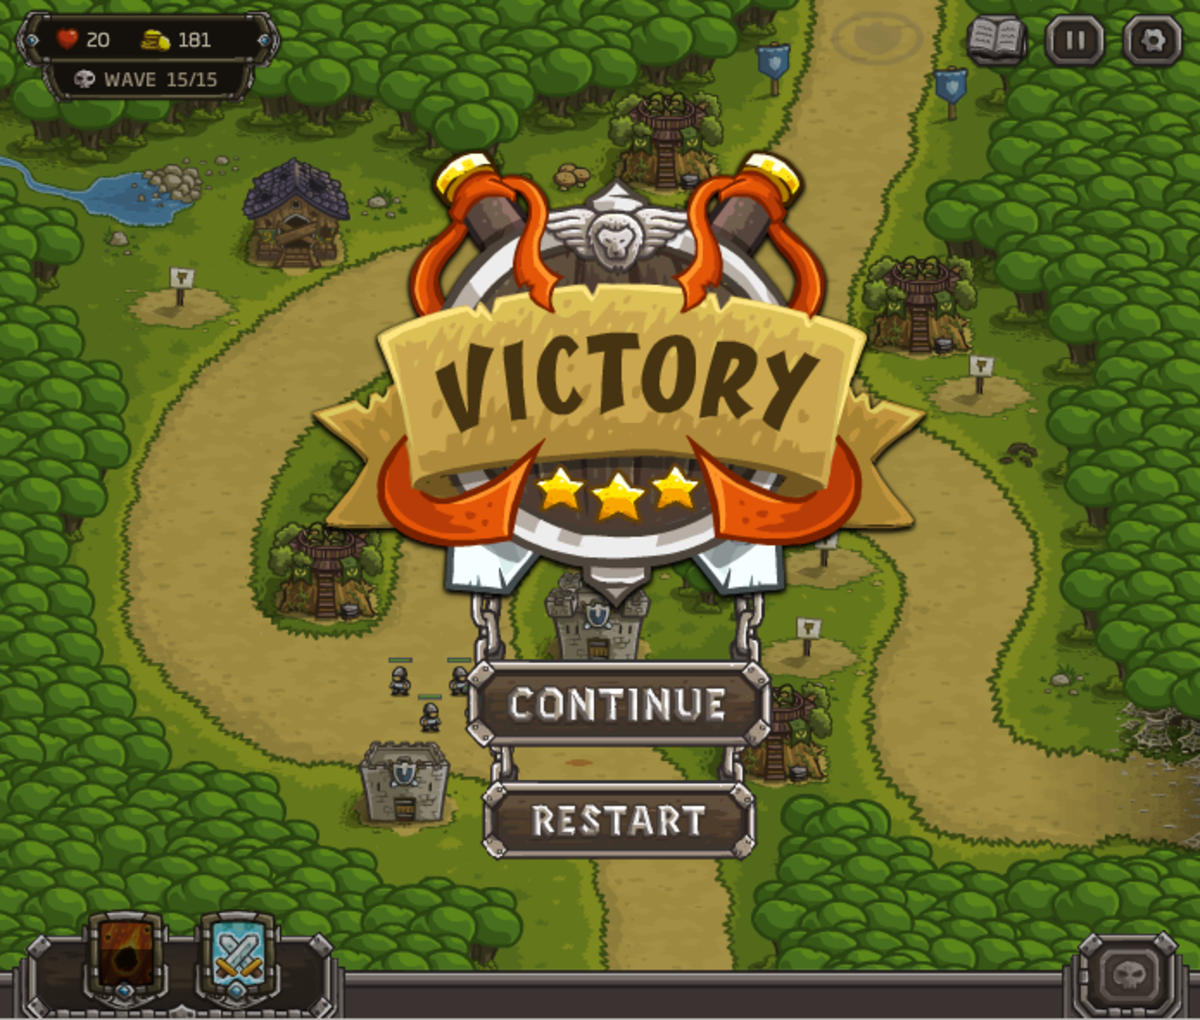 """The action is picking up in """"Kingdom Rush"""", and Silveroak Outpost is under attack from multiple angles. Can you defend it from the forces of darkness?"""